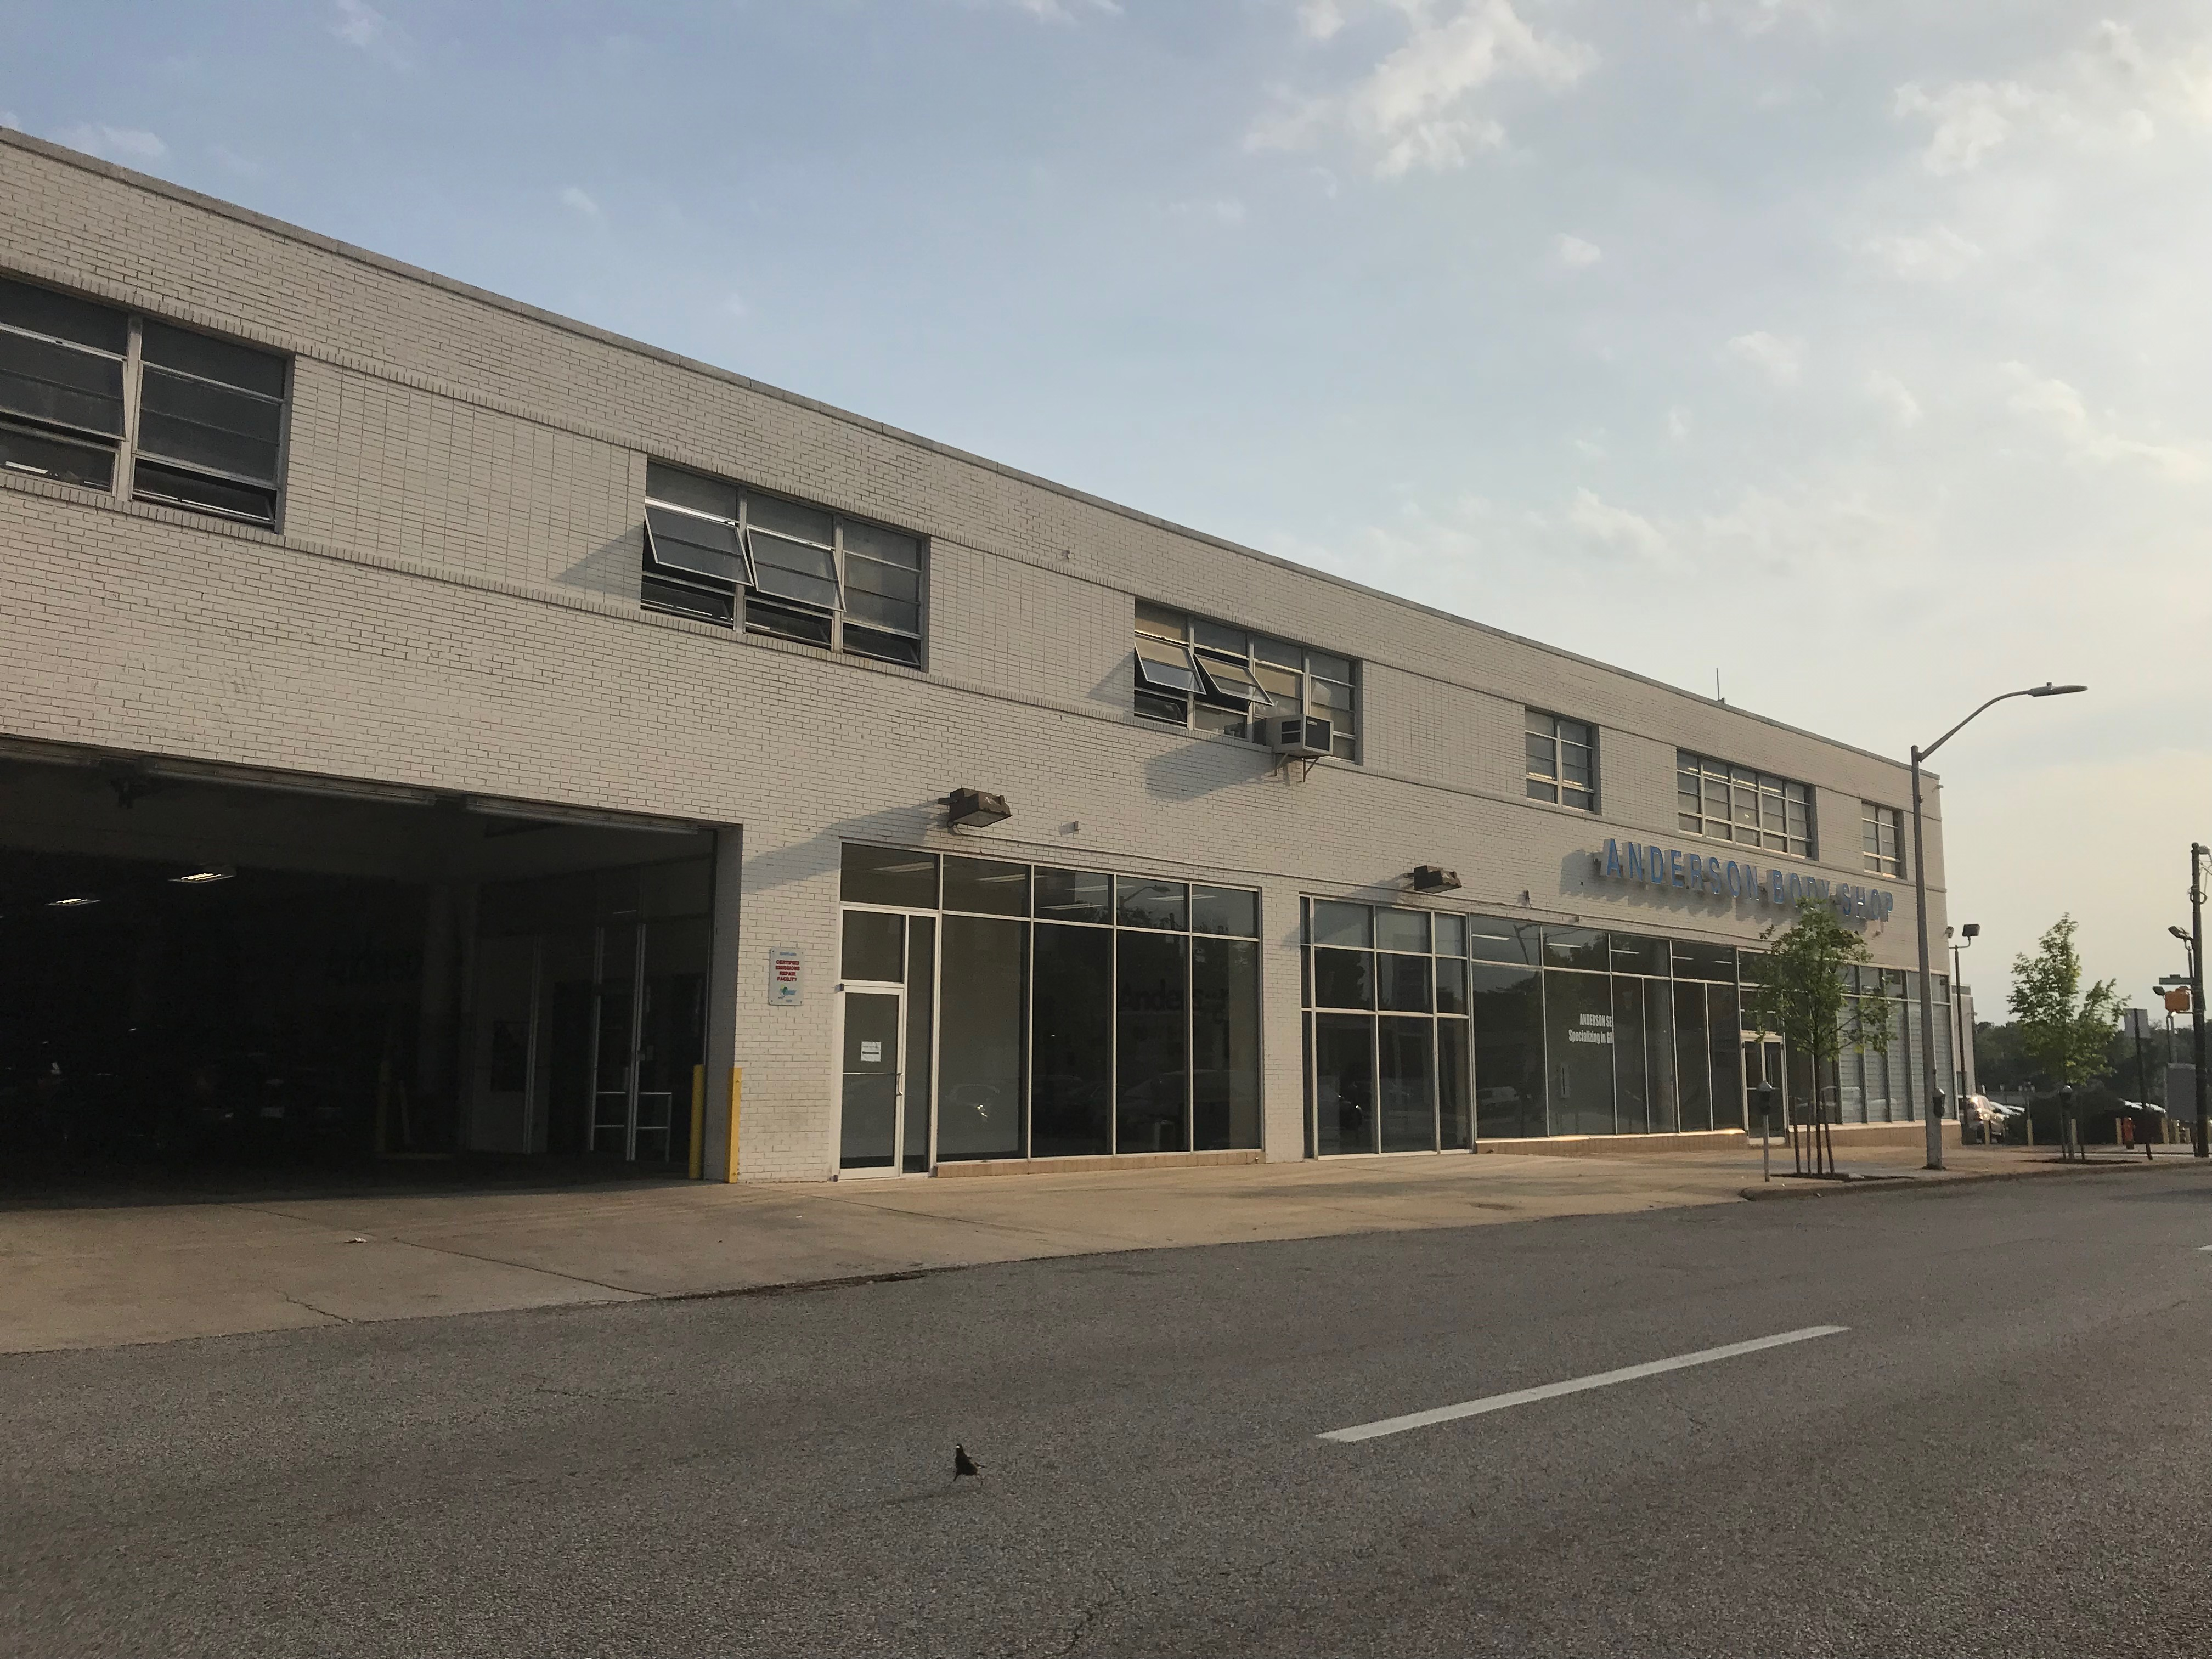 Anderson Body Shop, 115 W. 25th Street, Baltimore, MD 21218, 25th Street, Architecture, Automobile dealership, Baltimore, HQ Photo